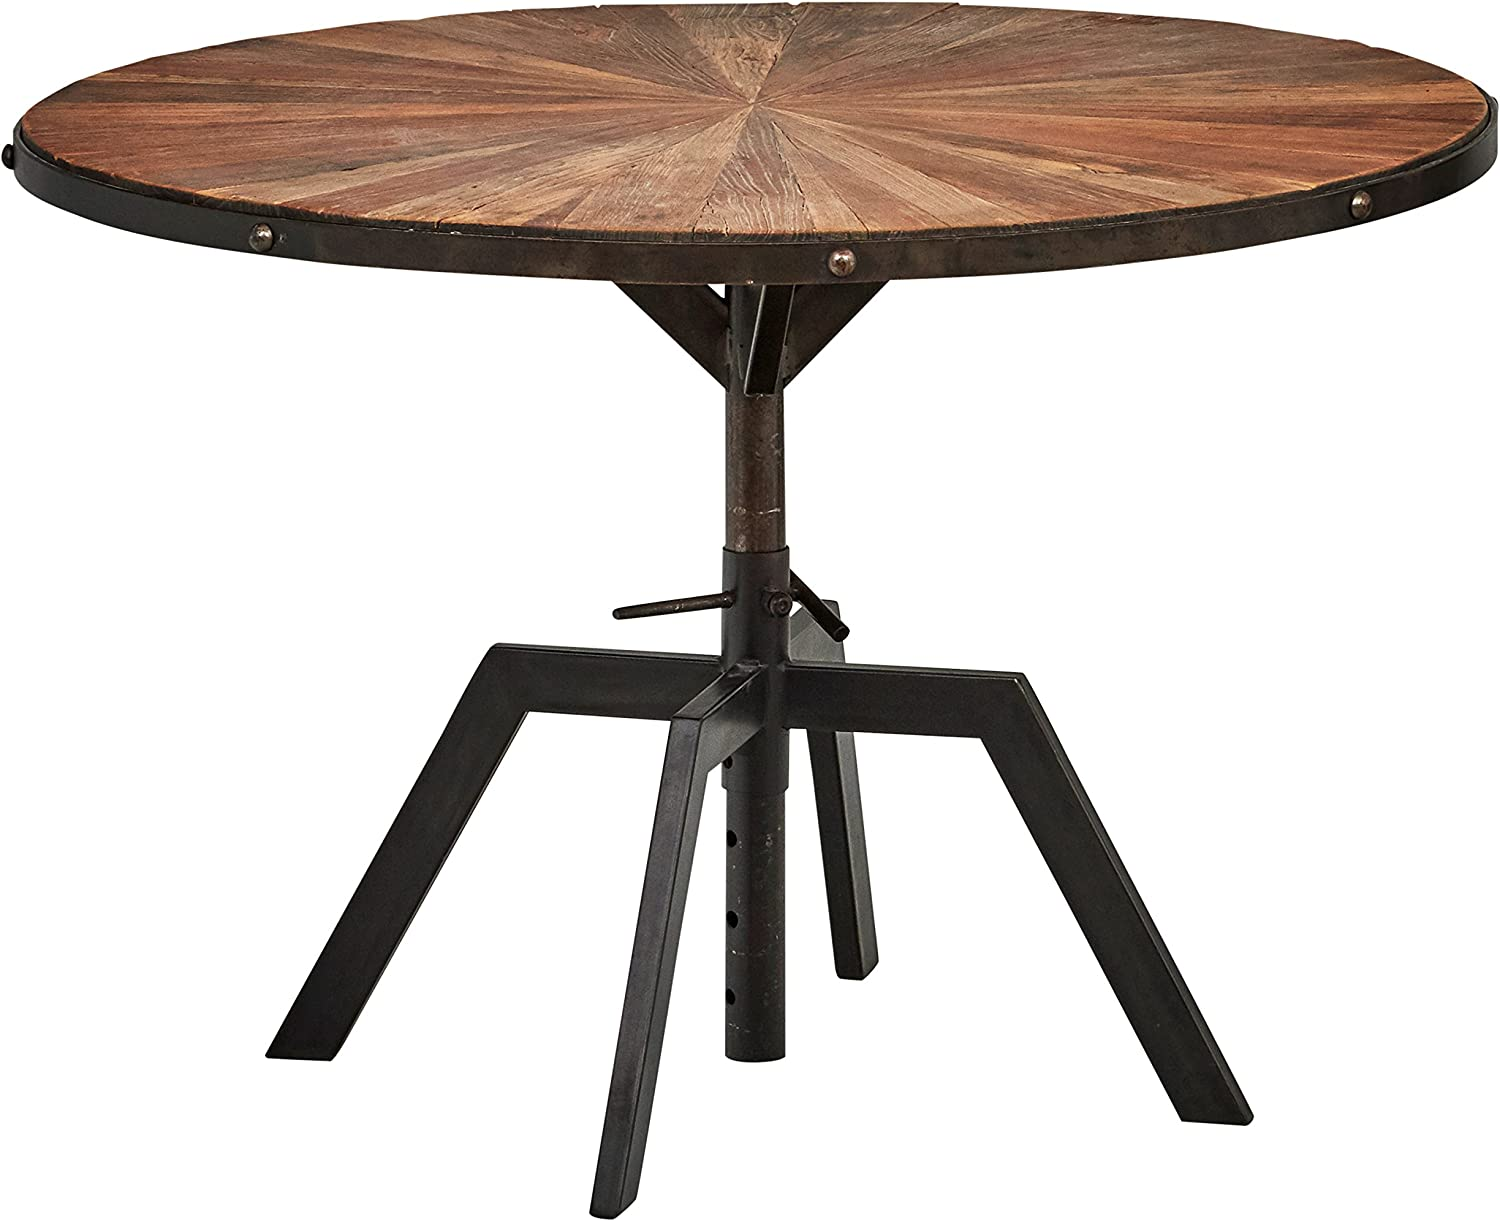 Rivet Industrial Wood and Metal Round Dining Kitchen Table